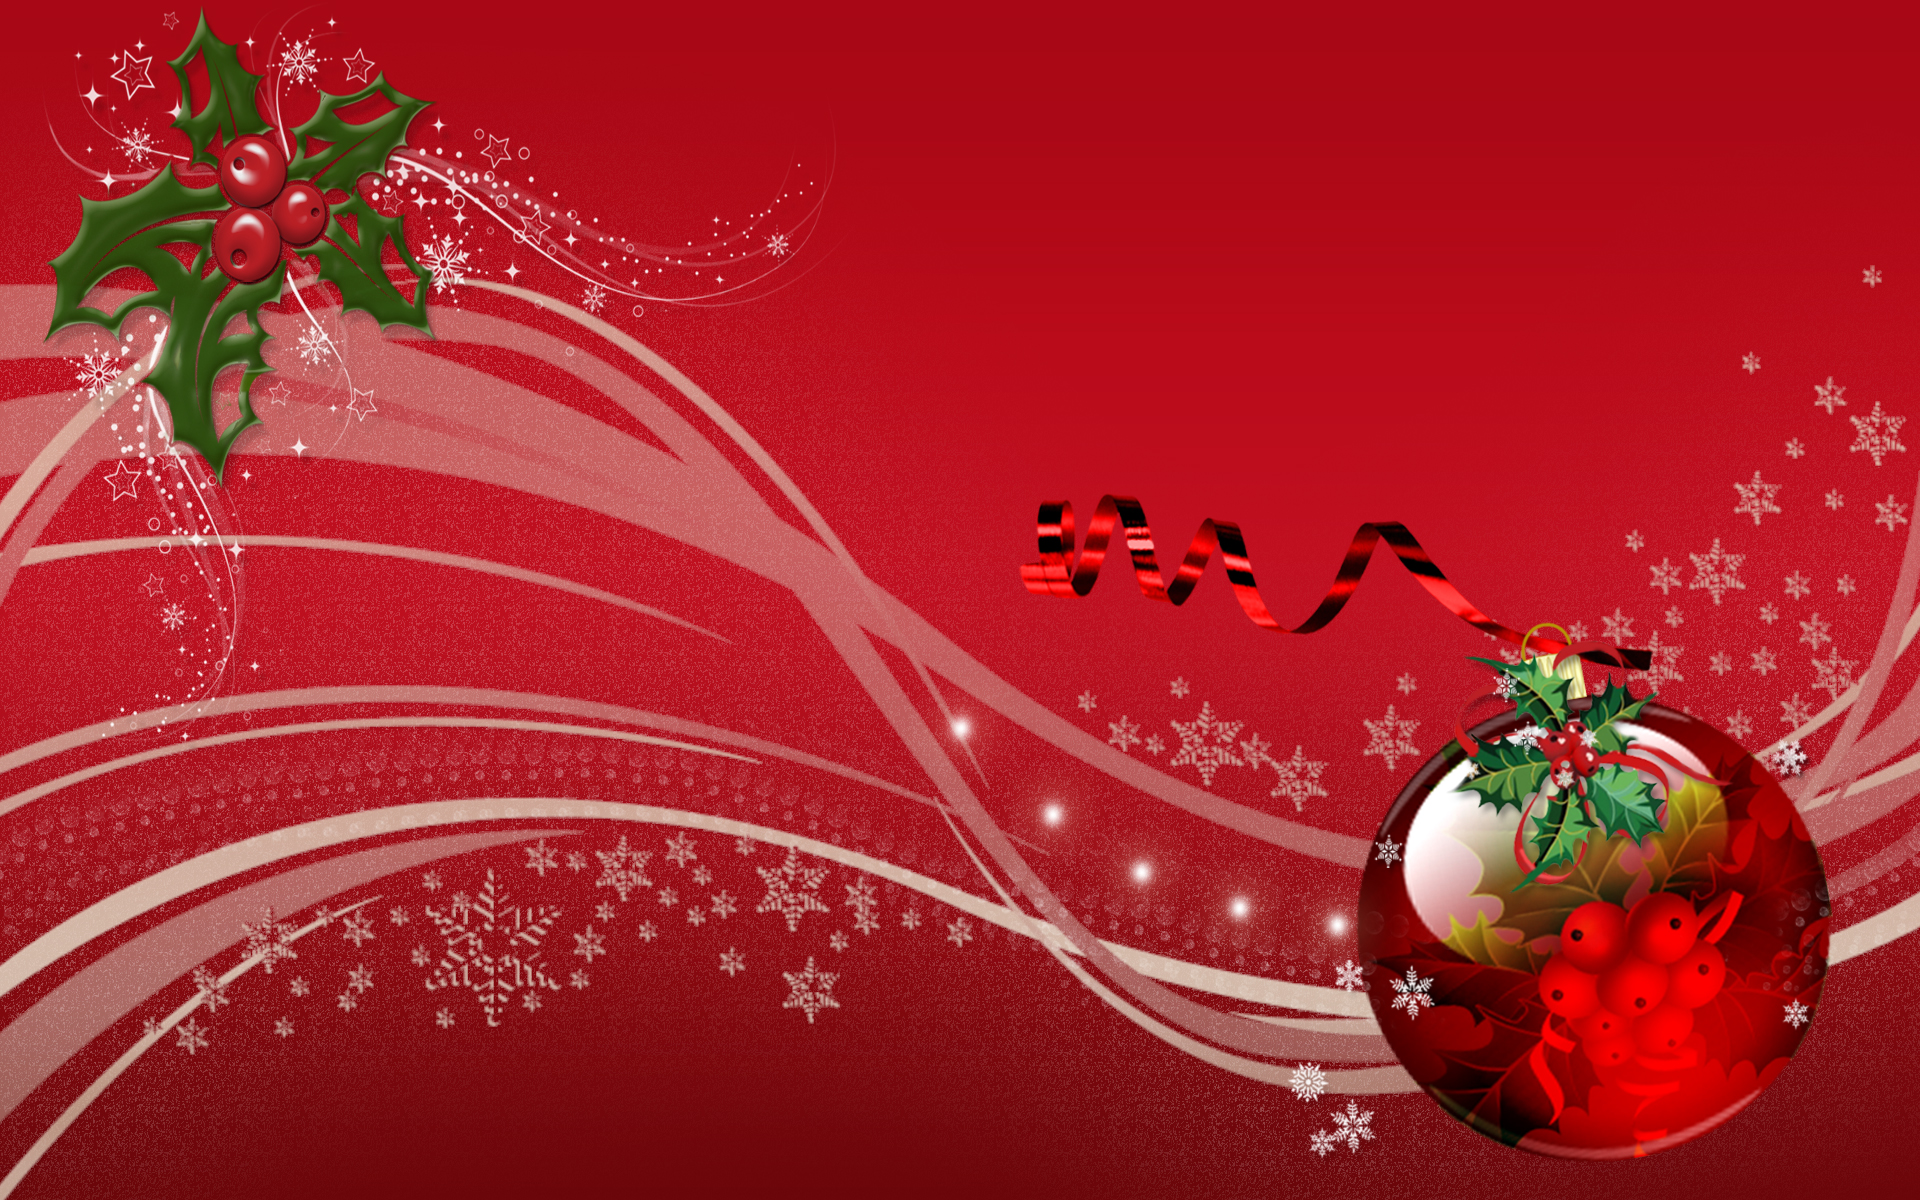 Christmas Red.Christmas Red Ball By Frankief On Deviantart